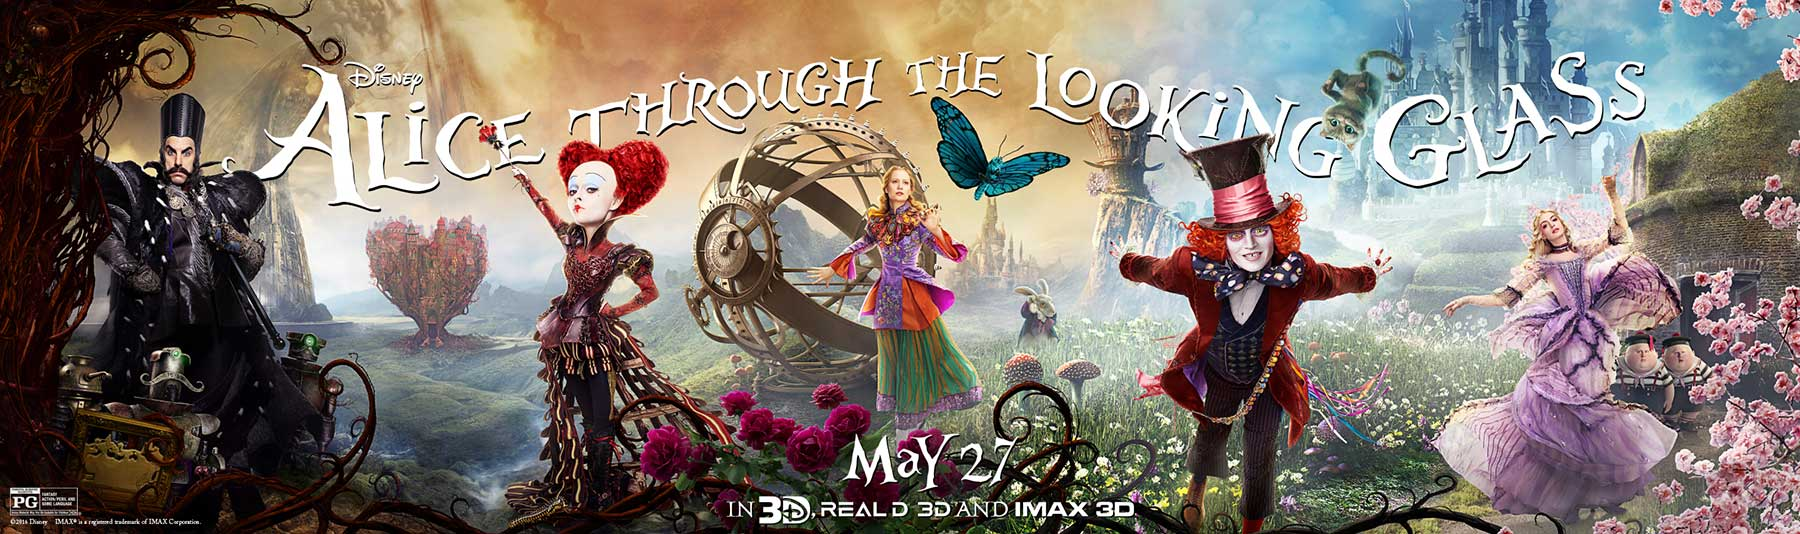 AliceThroughTheLookingGlass-wideposter